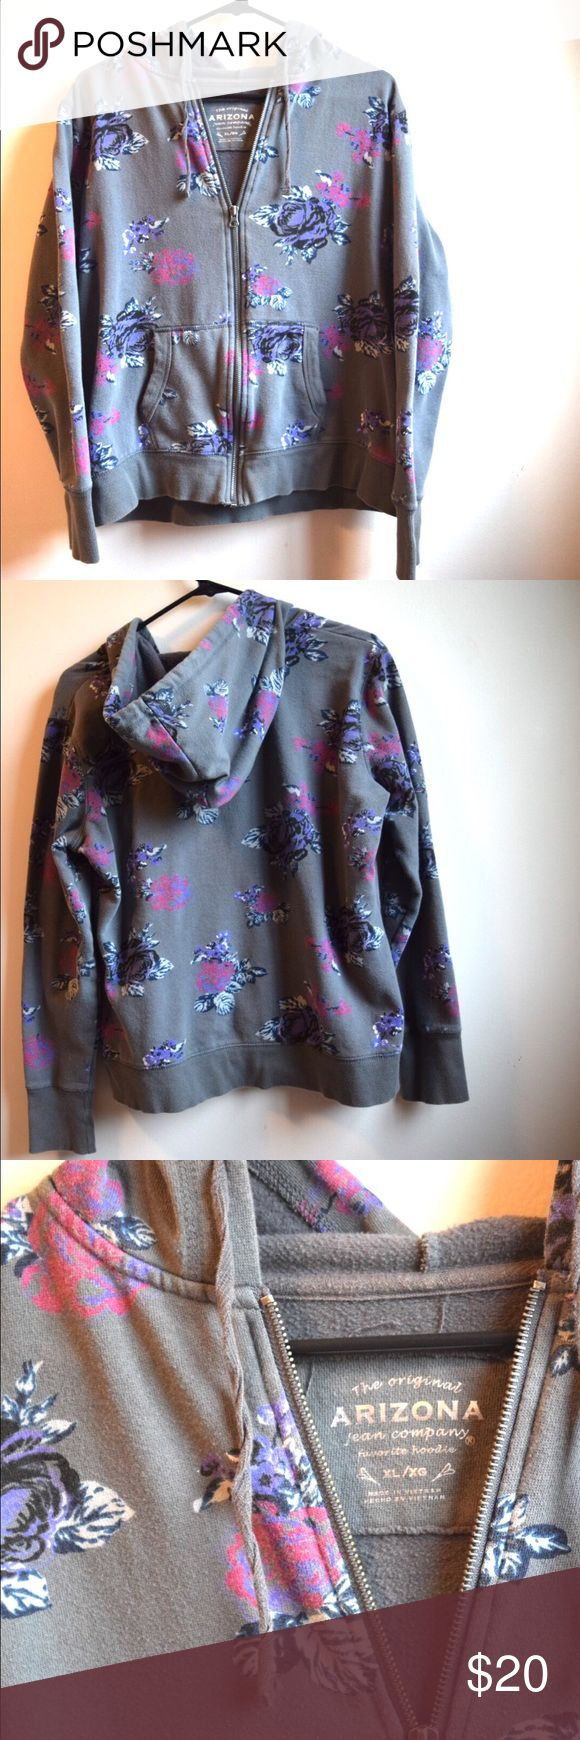 Arizona Jeans Gray Floral Hoodie Size XL This hoodie has the perfect combination of comfort and florals! Feel free to make an offer! Arizona Jean Company Tops Sweatshirts & Hoodies